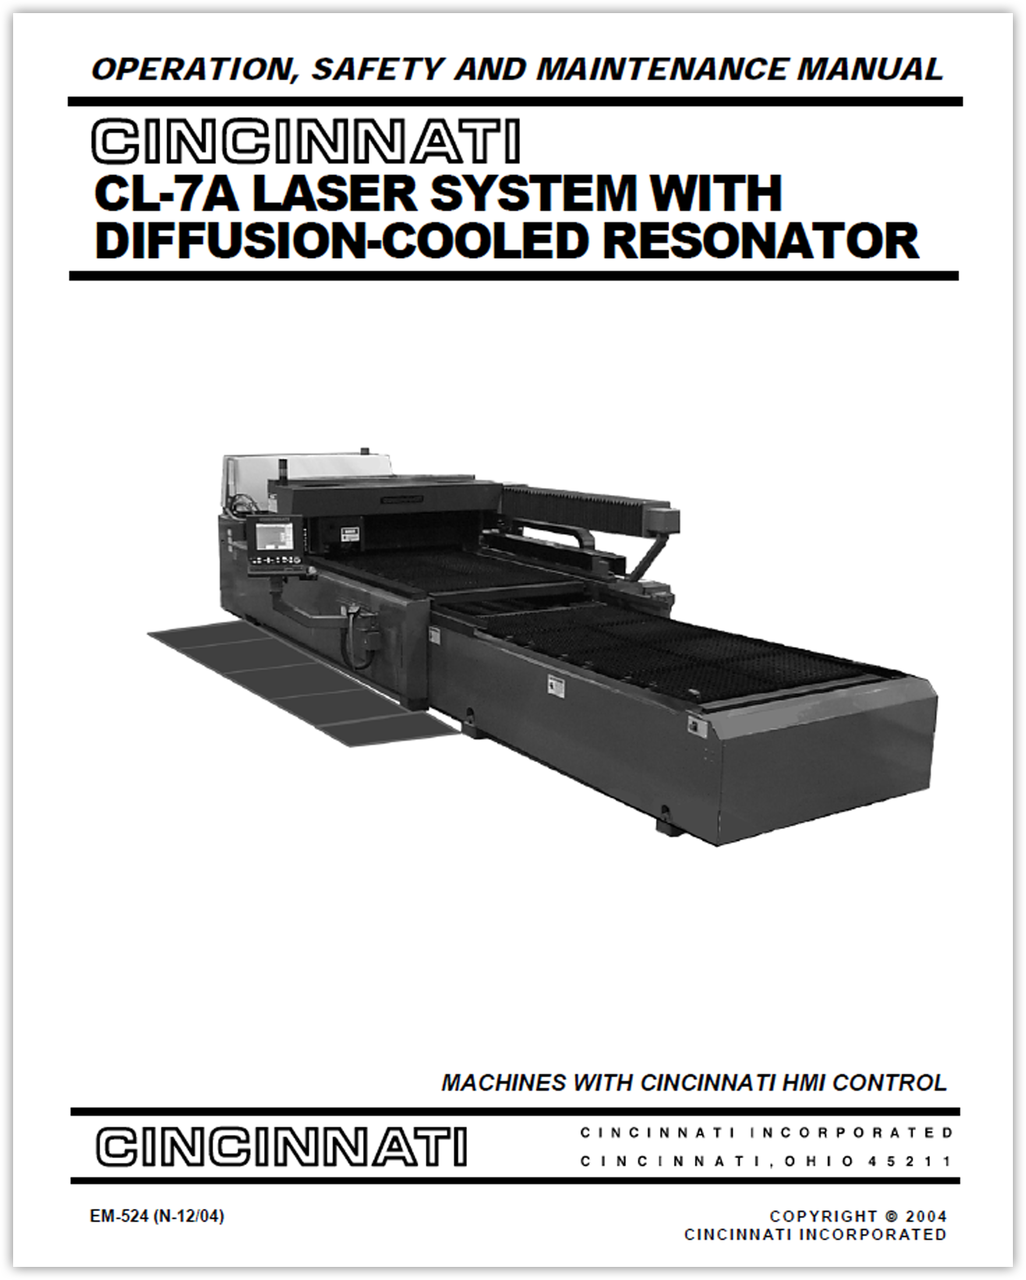 EM-524 (N-12-04) CL-7A Laser System with Diffusion-Cooled Resonator - Operation, Safety and Maintenance Manual - Machines with HMI Control